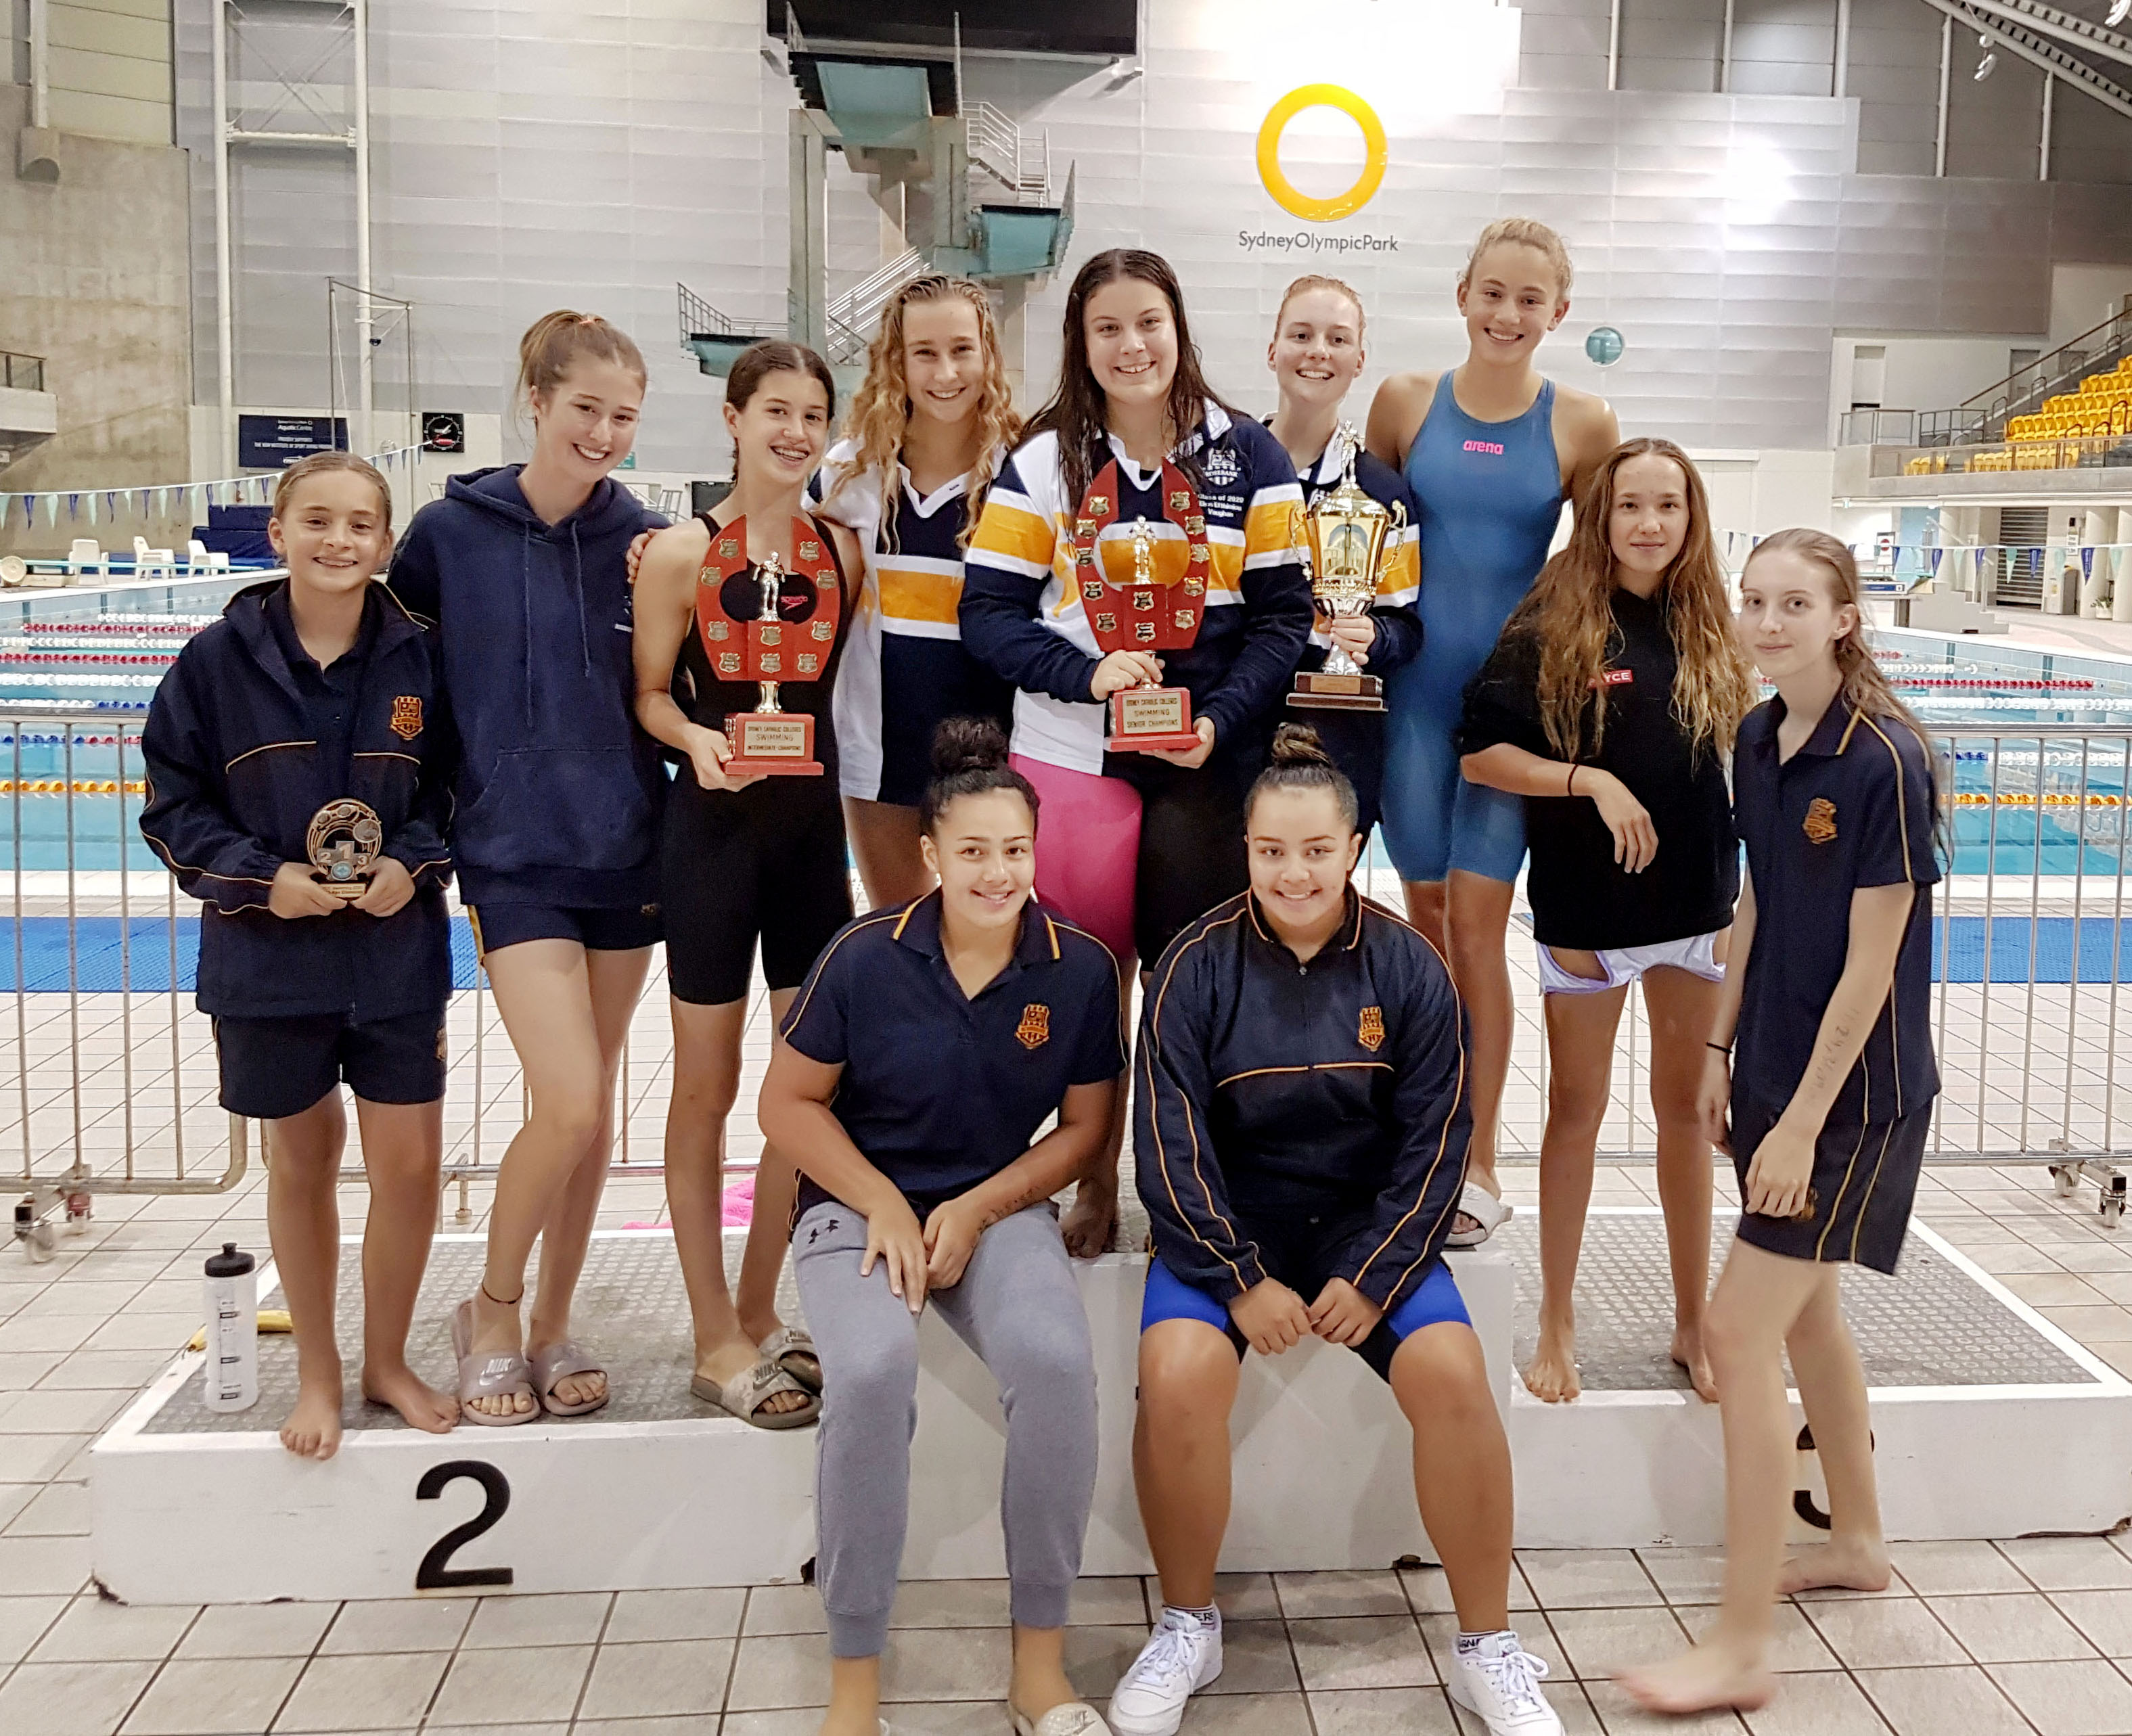 Congratulations to our CBSA and SCC Swimming teams